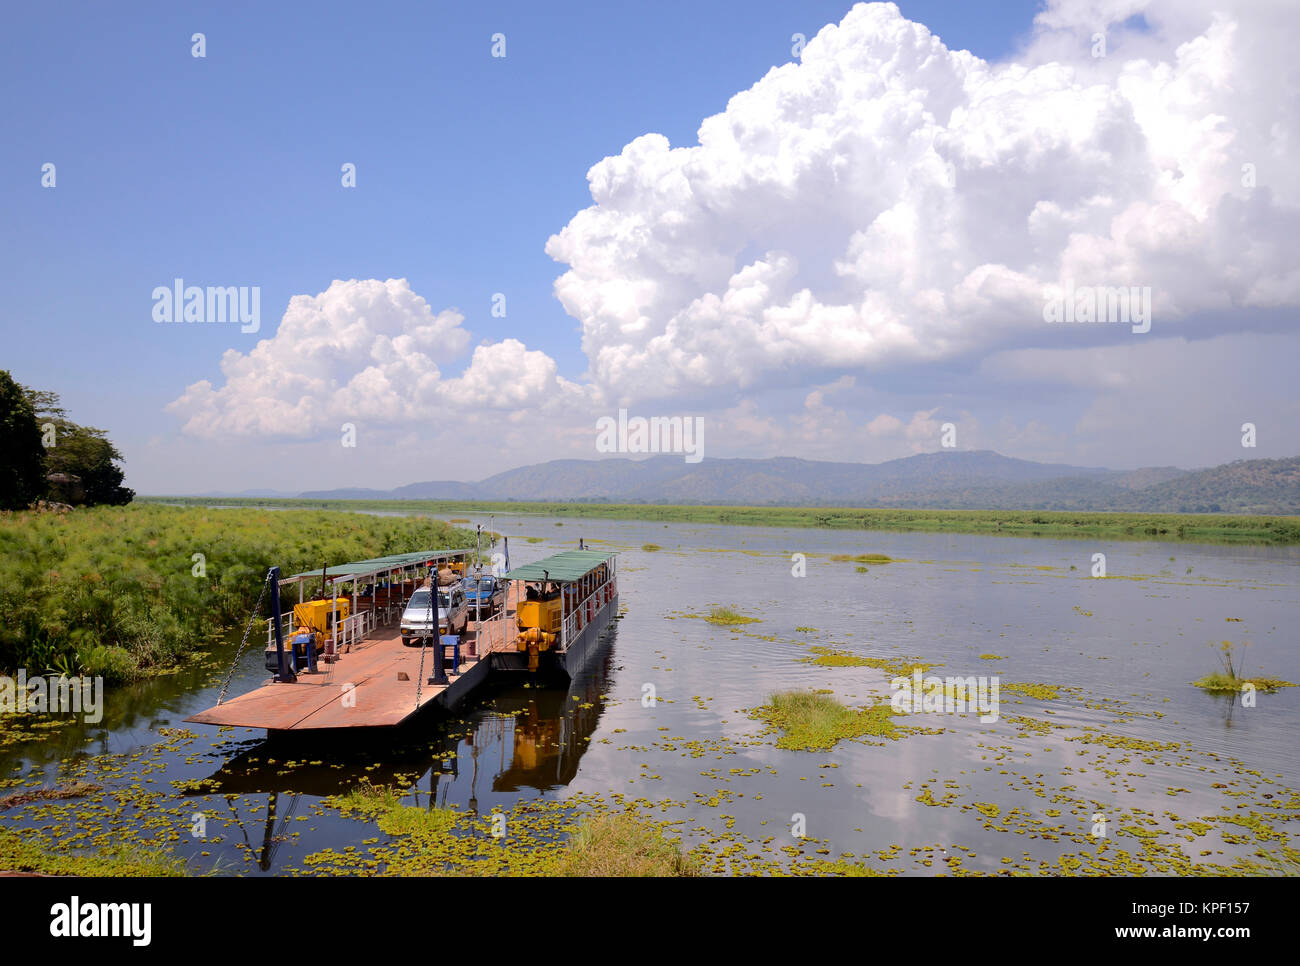 """Uganda is called """"The pearl of Africa"""" because of its beautiful landscapes, friendly people, and abundance of rain. Stock Photo"""